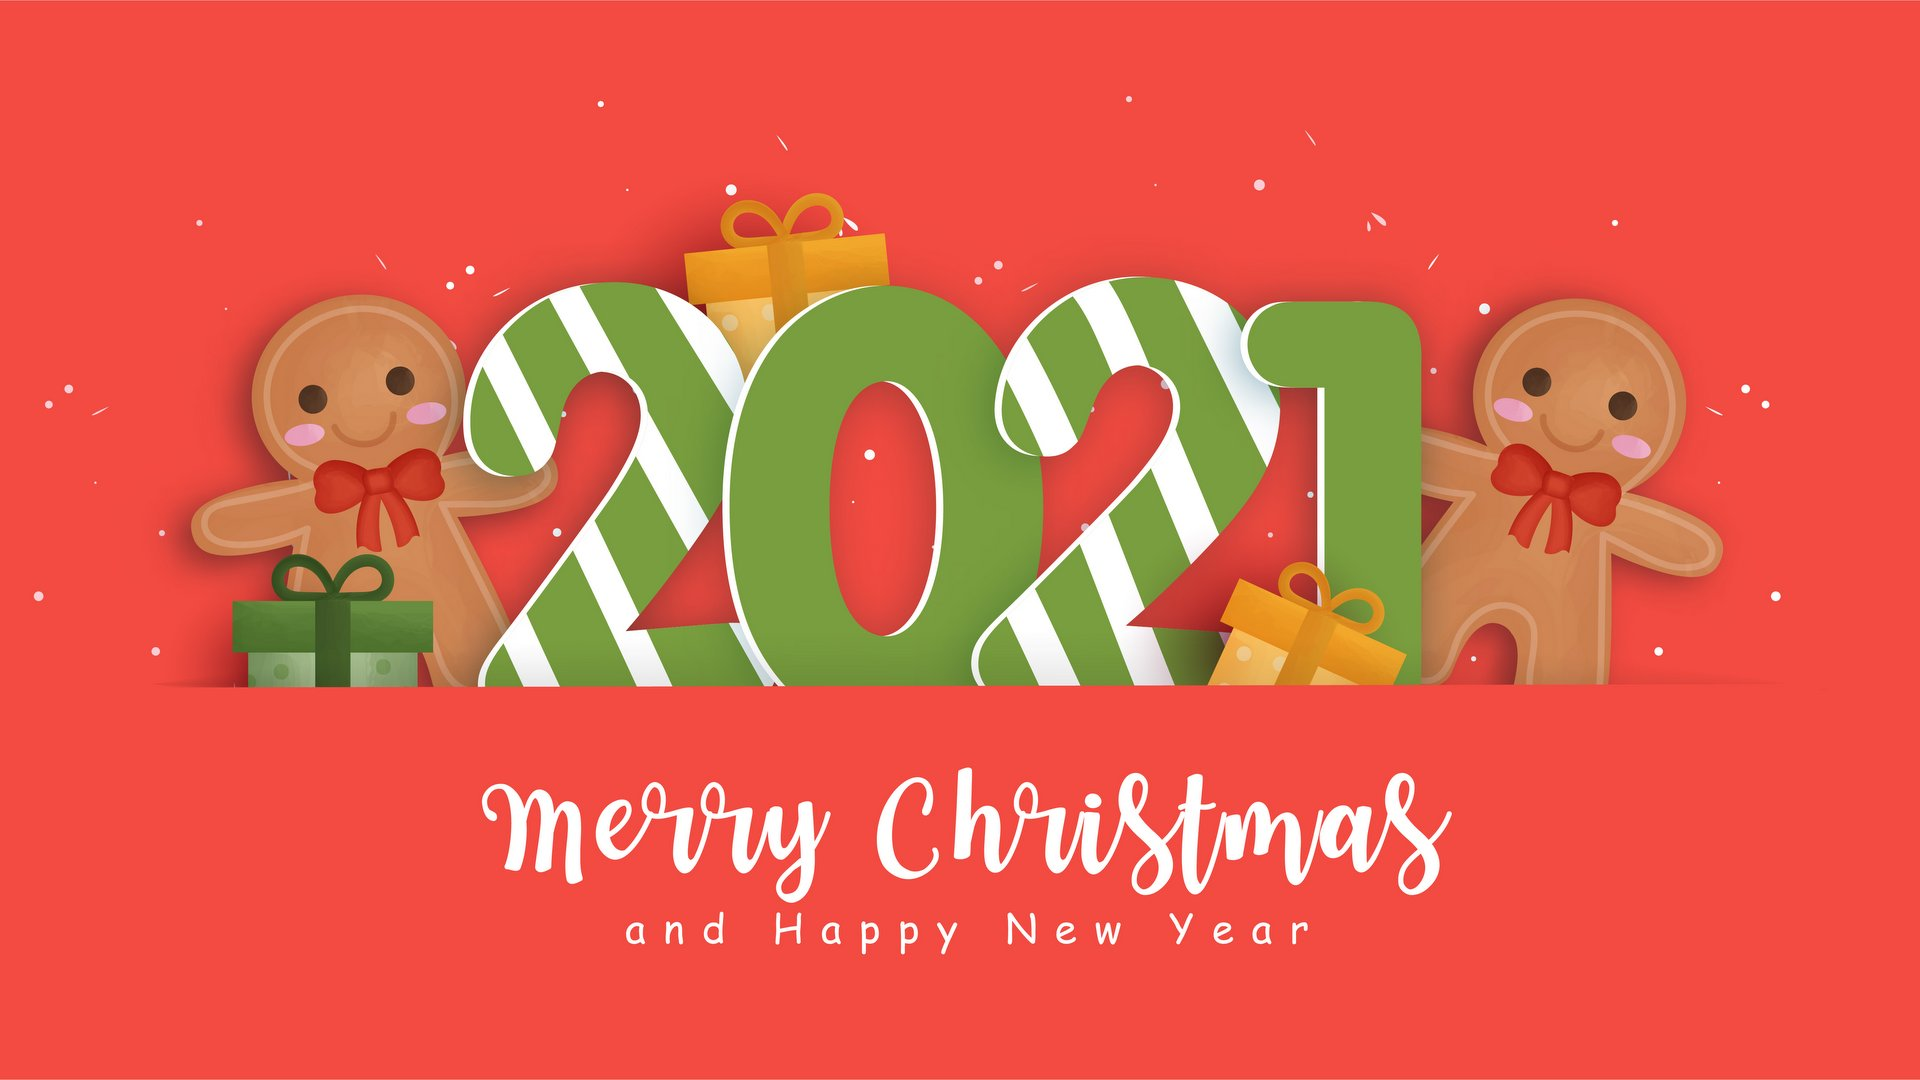 Merry Christmas and Happy New Year 2021 ecard